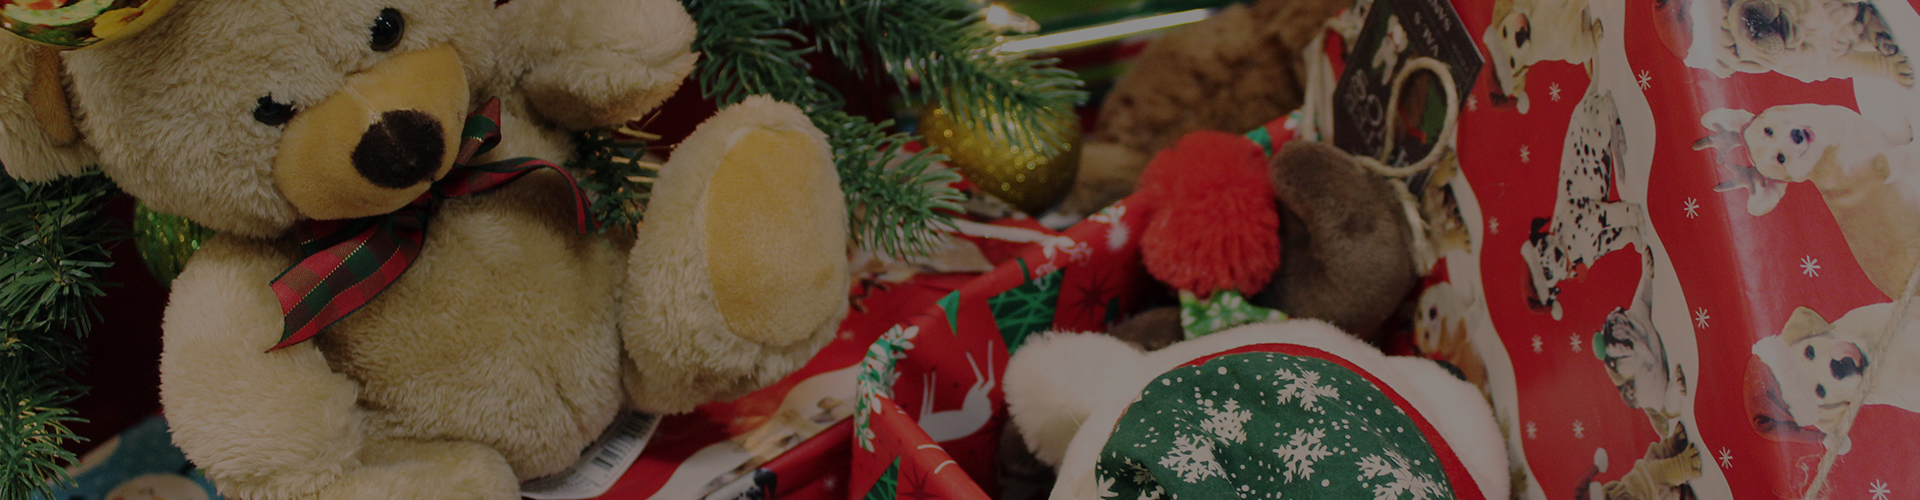 Close up of a teddy bear wearing a bow tie sitting among other Christmas gifts